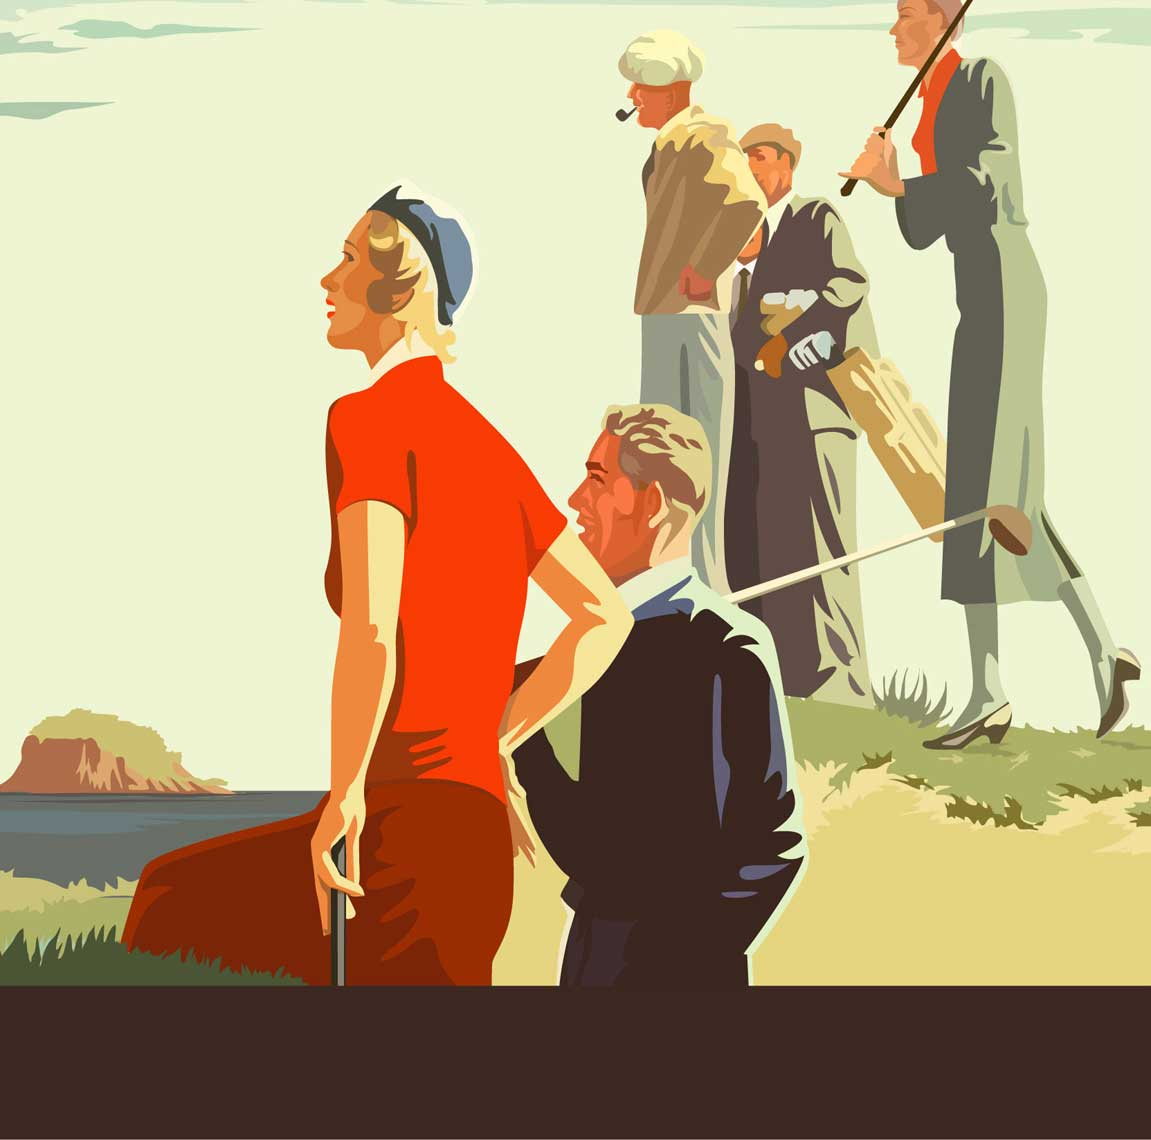 illustration painting-retro-1920s caddies with golfers on golfcourse